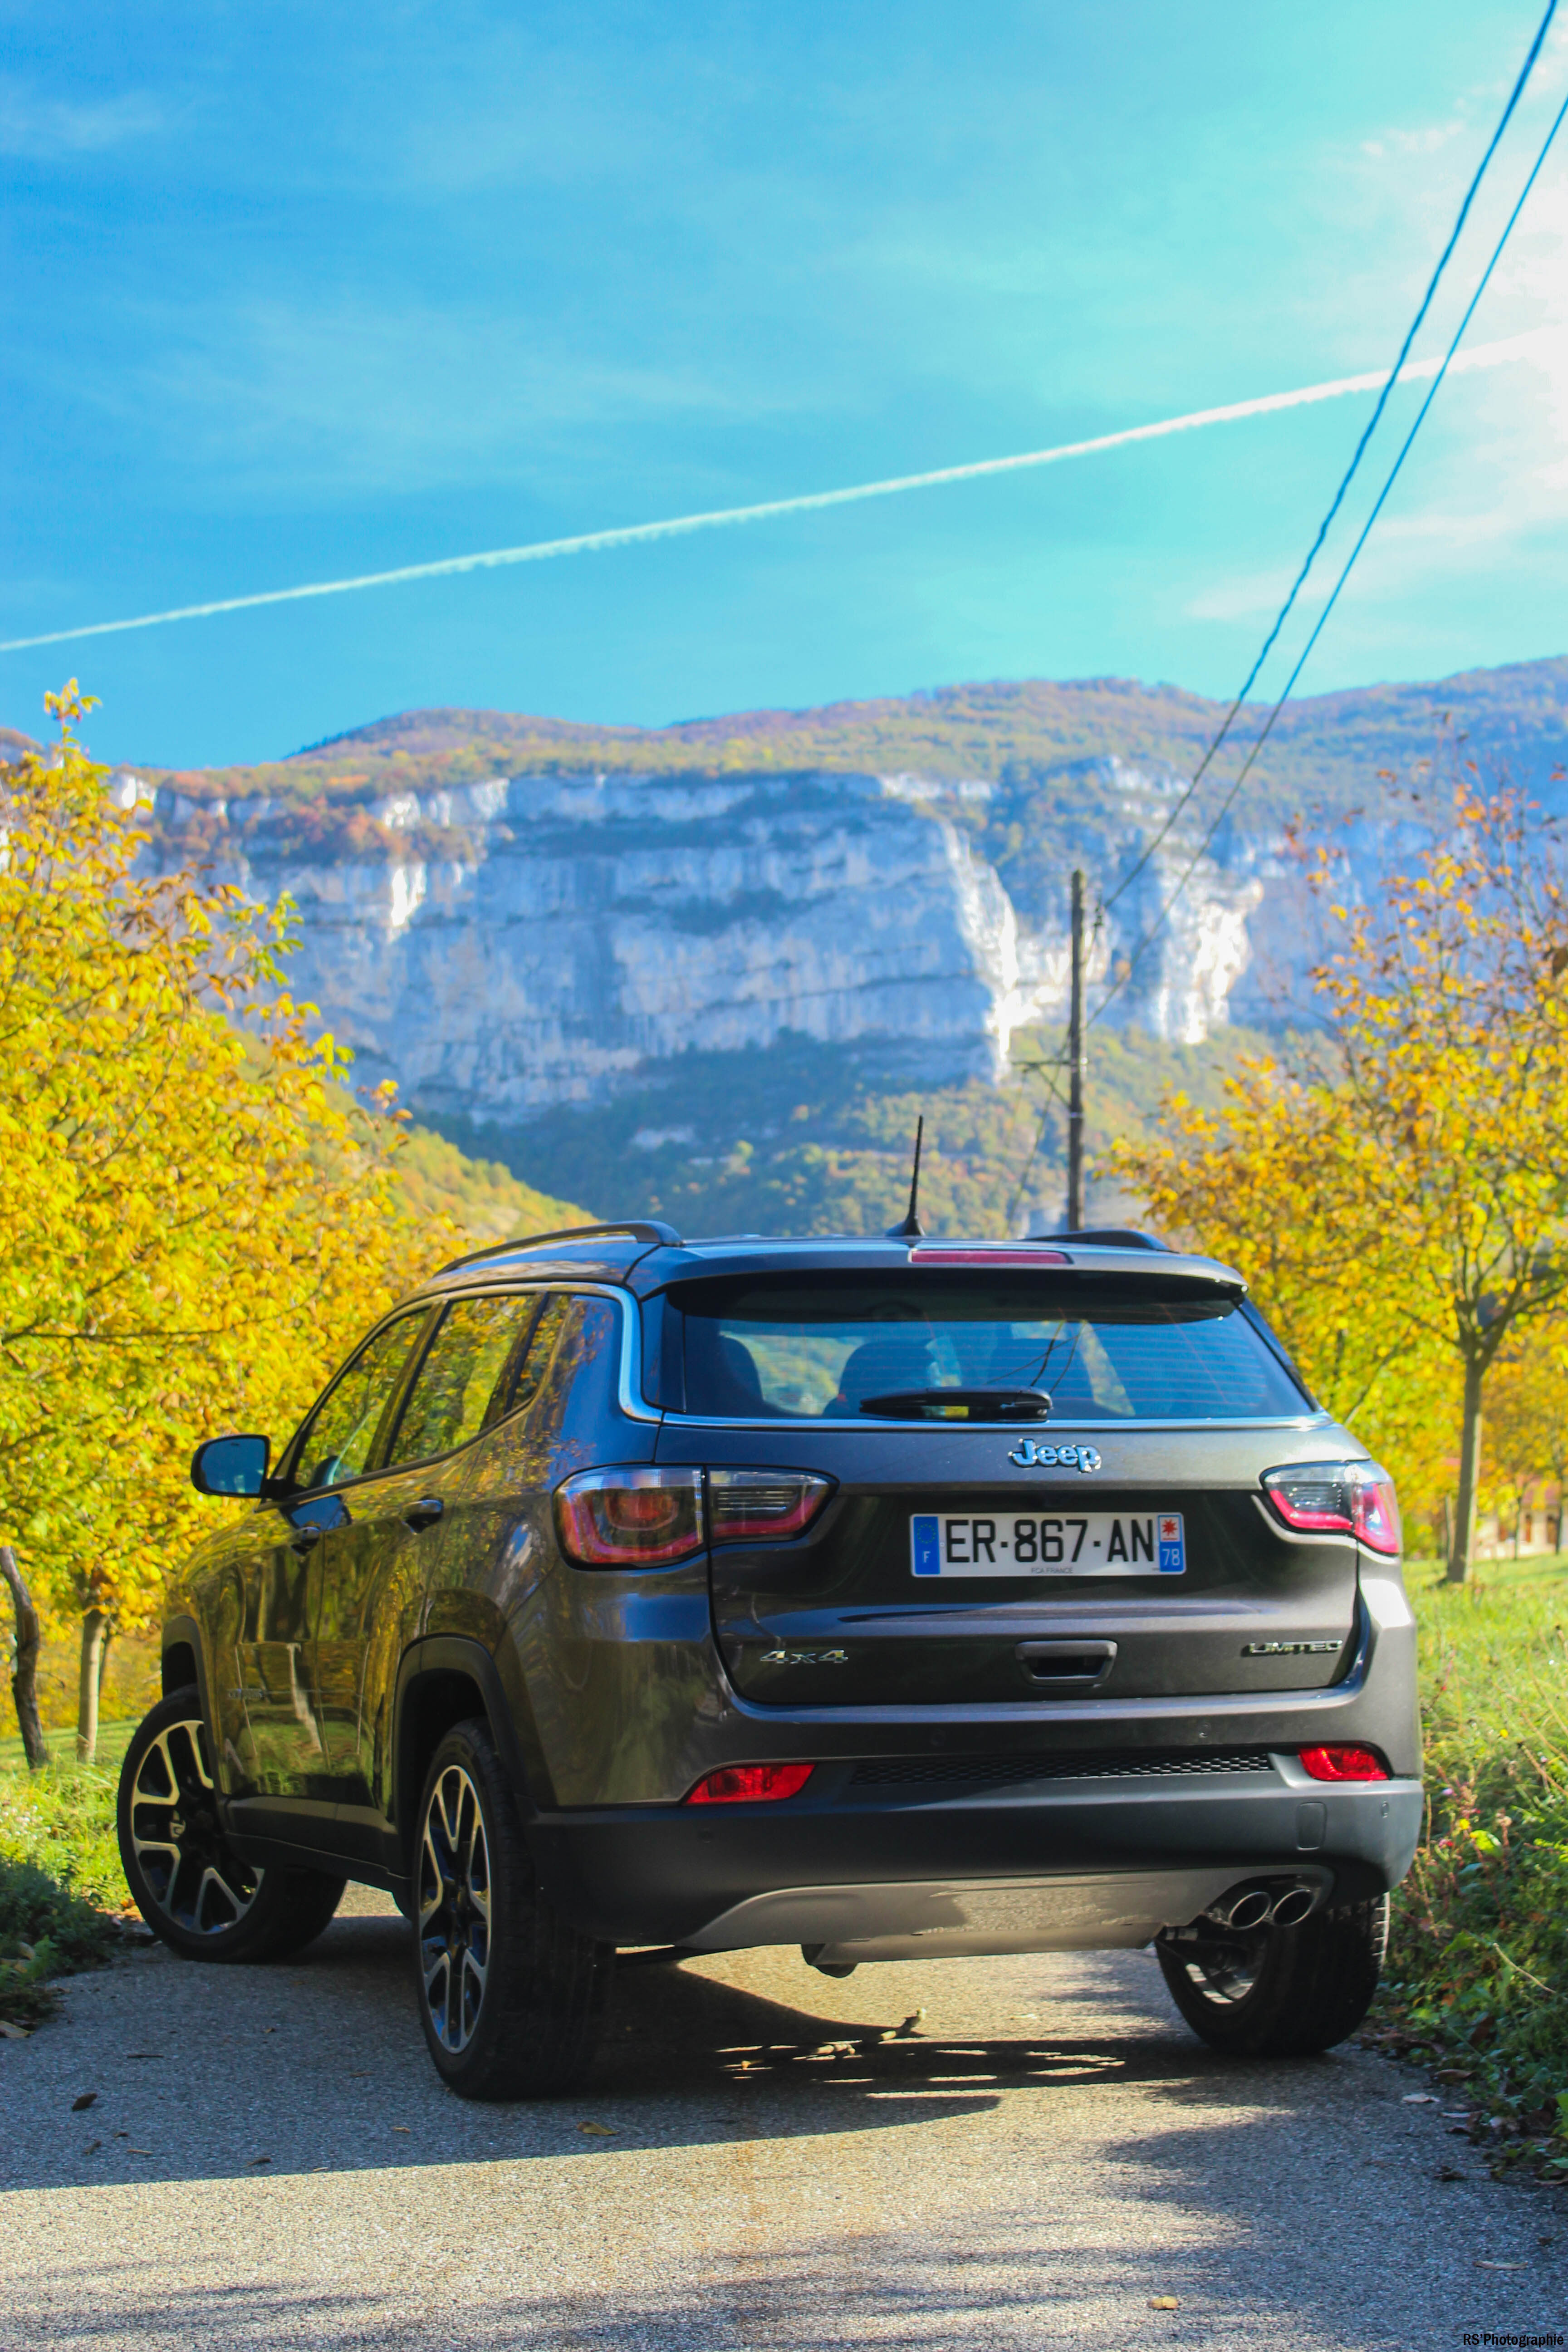 jeepcompass11-jeep-compass-arriere-rear-Arnaud Demasier-RSPhotographie